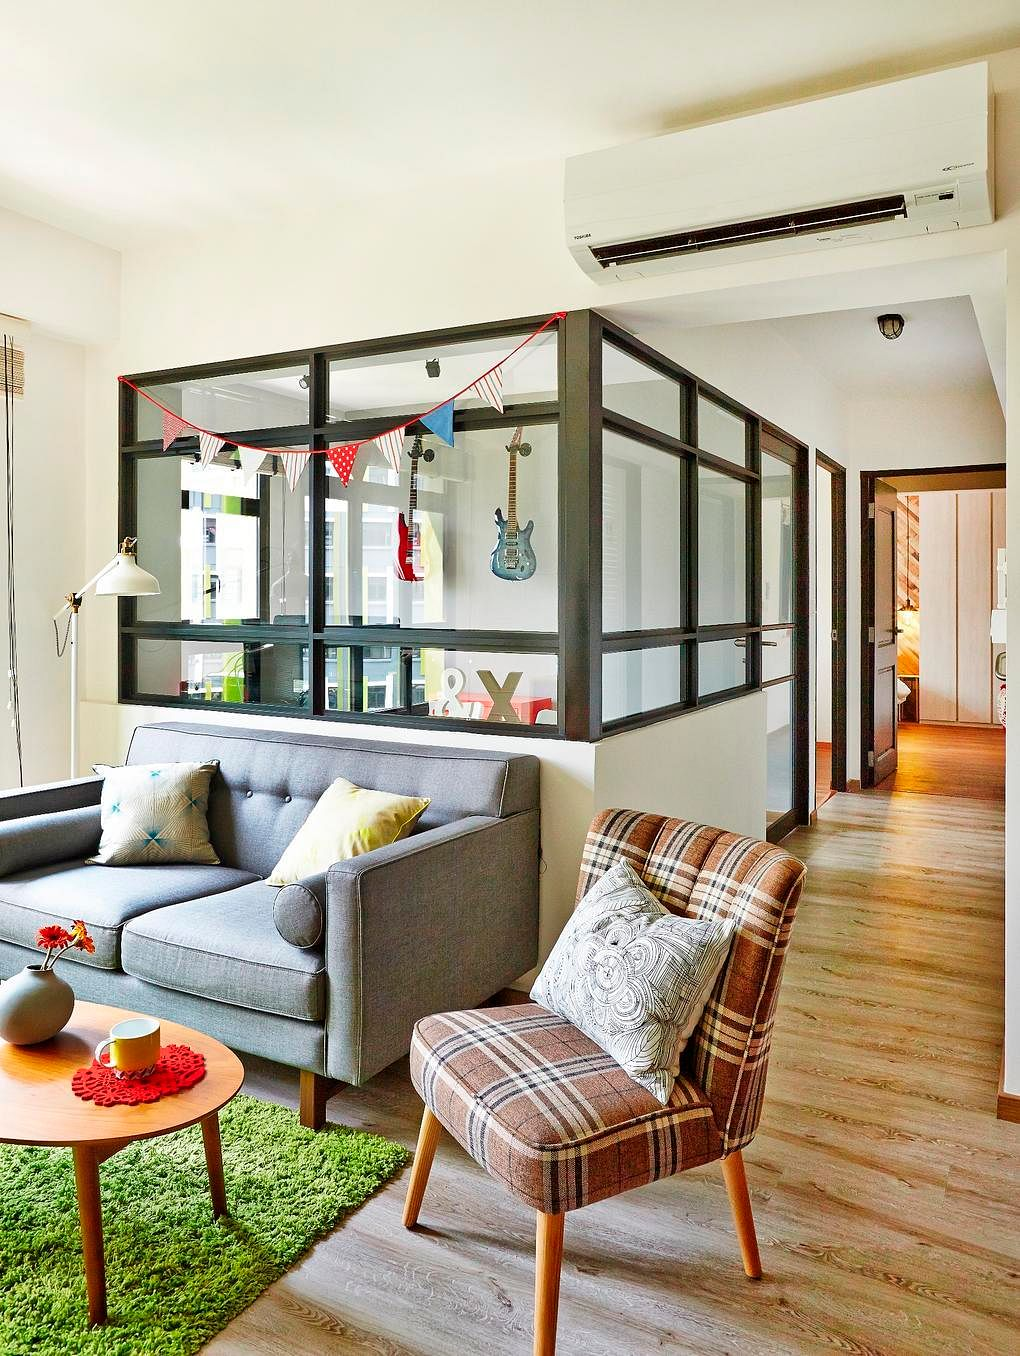 3 Room Hdb Interior Design Ideas: 9 Edgy Open-concept Designs In Trendy HDB Flat Homes